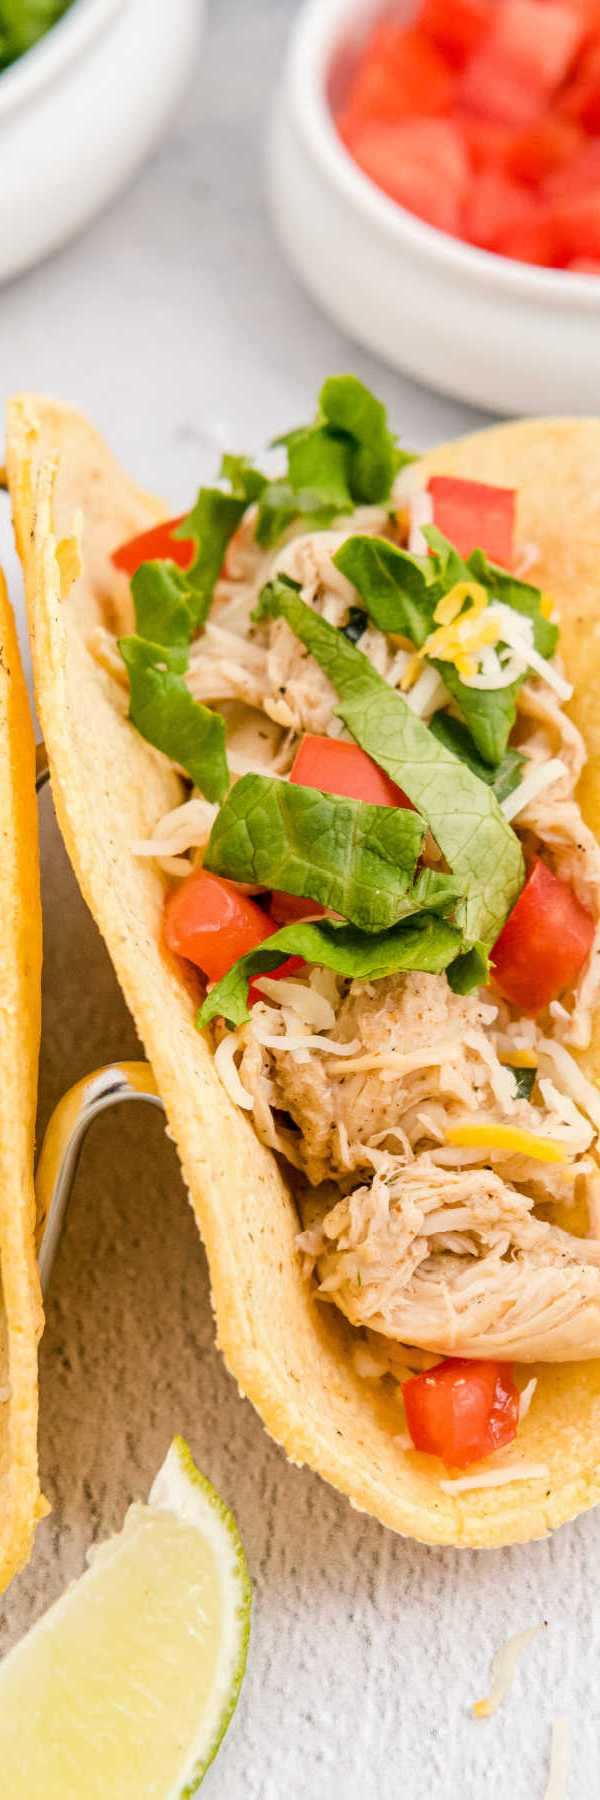 Quick and easy Crockpot Shredded Chicken Tacos for busy weeknight dinners.